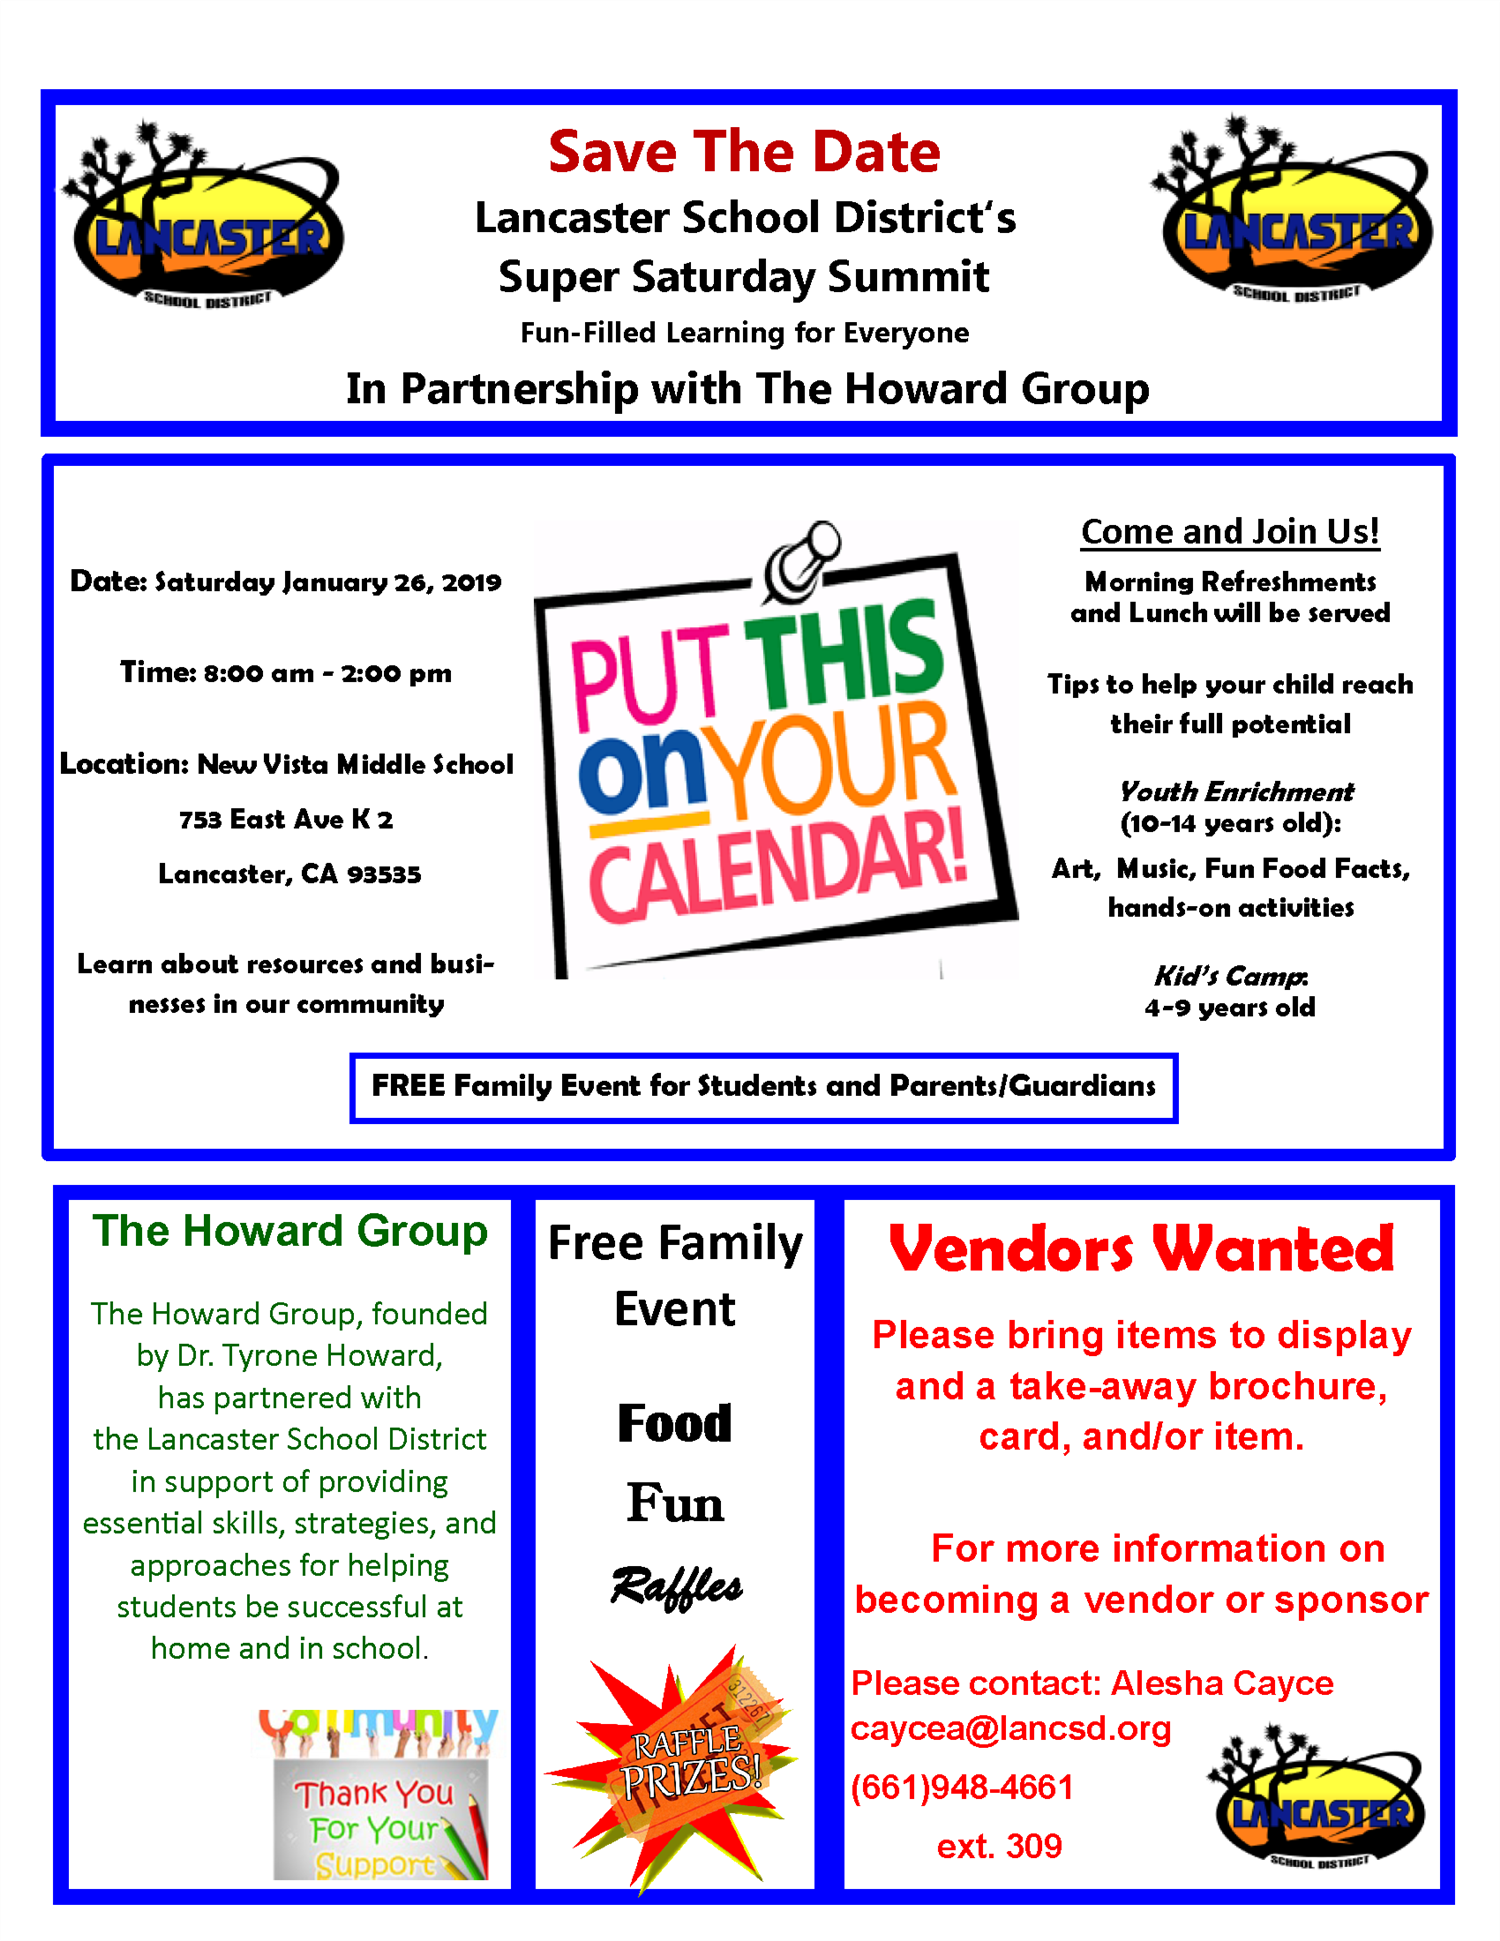 Super Saturday Summit